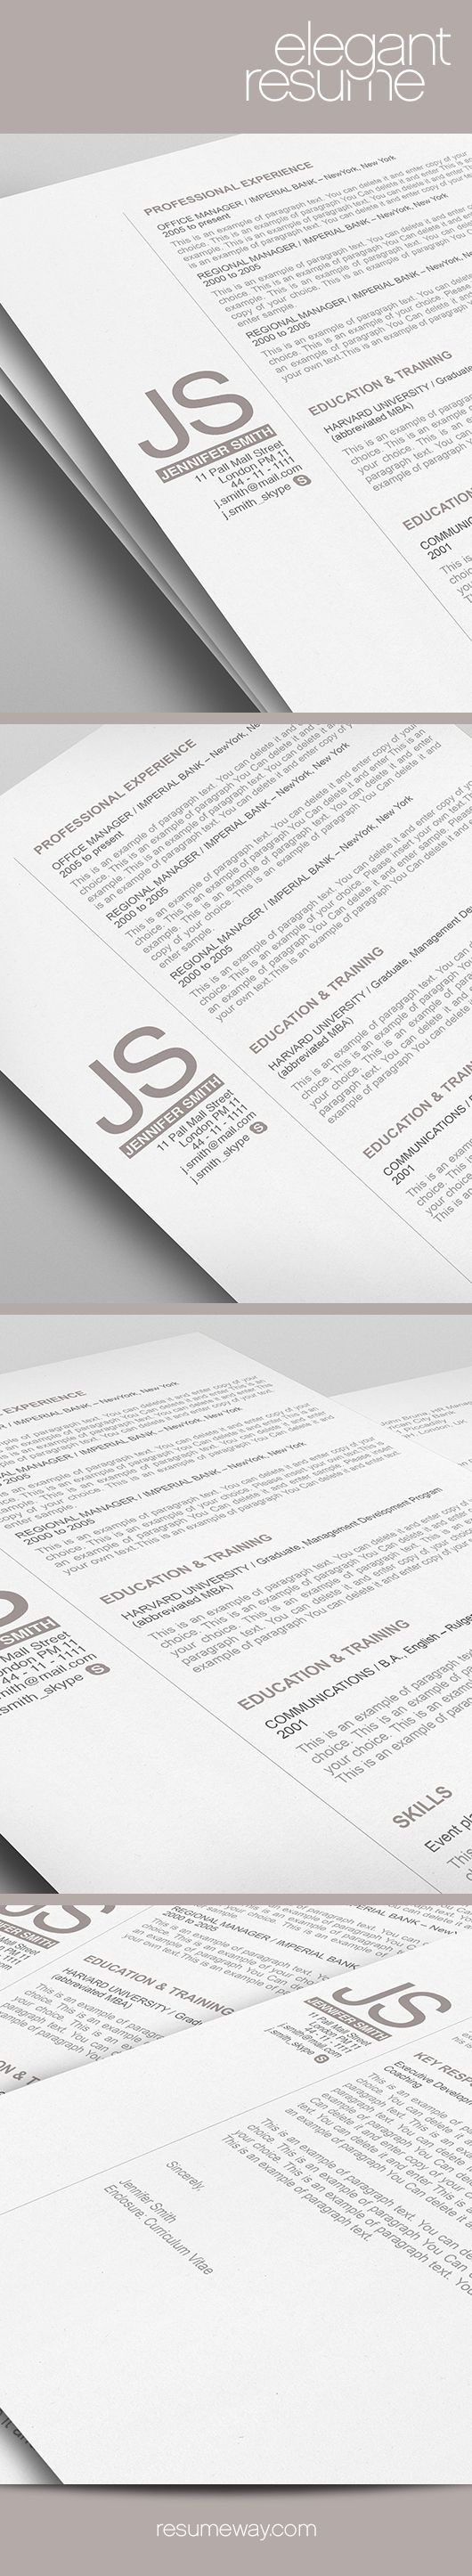 best ideas about cover letter sample cover elegant resume template 110530 premium line of resume cover letter templates easy